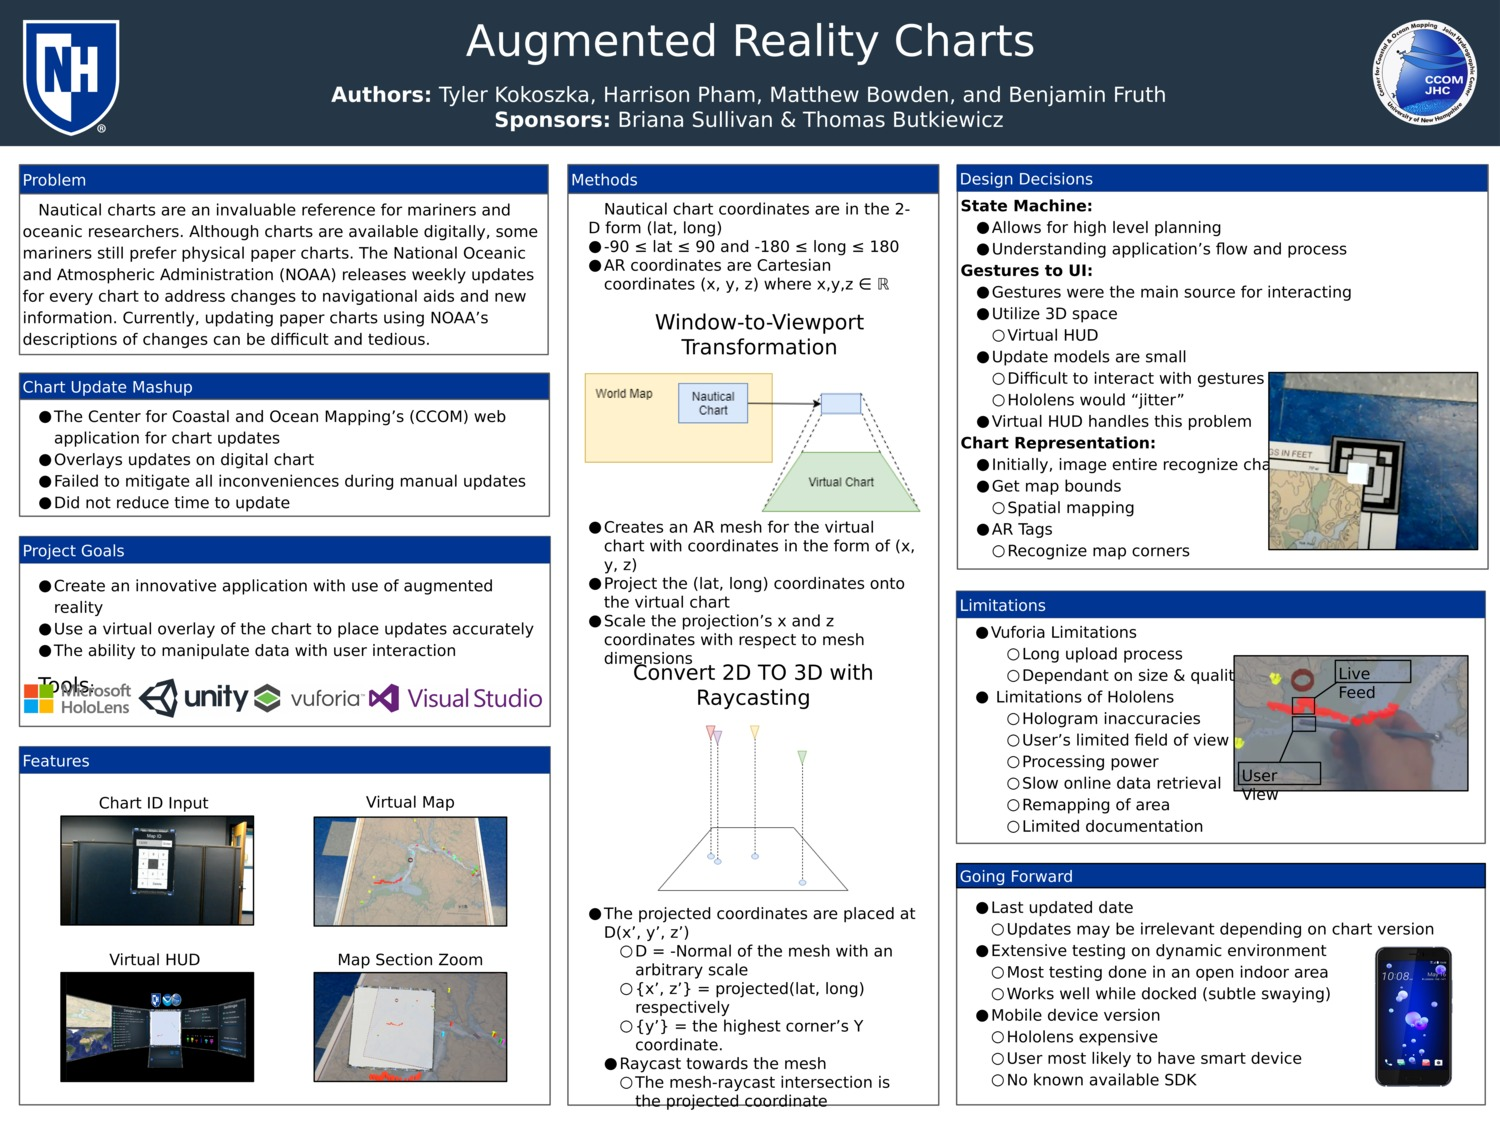 Augmented Reality Charts by hgp2000